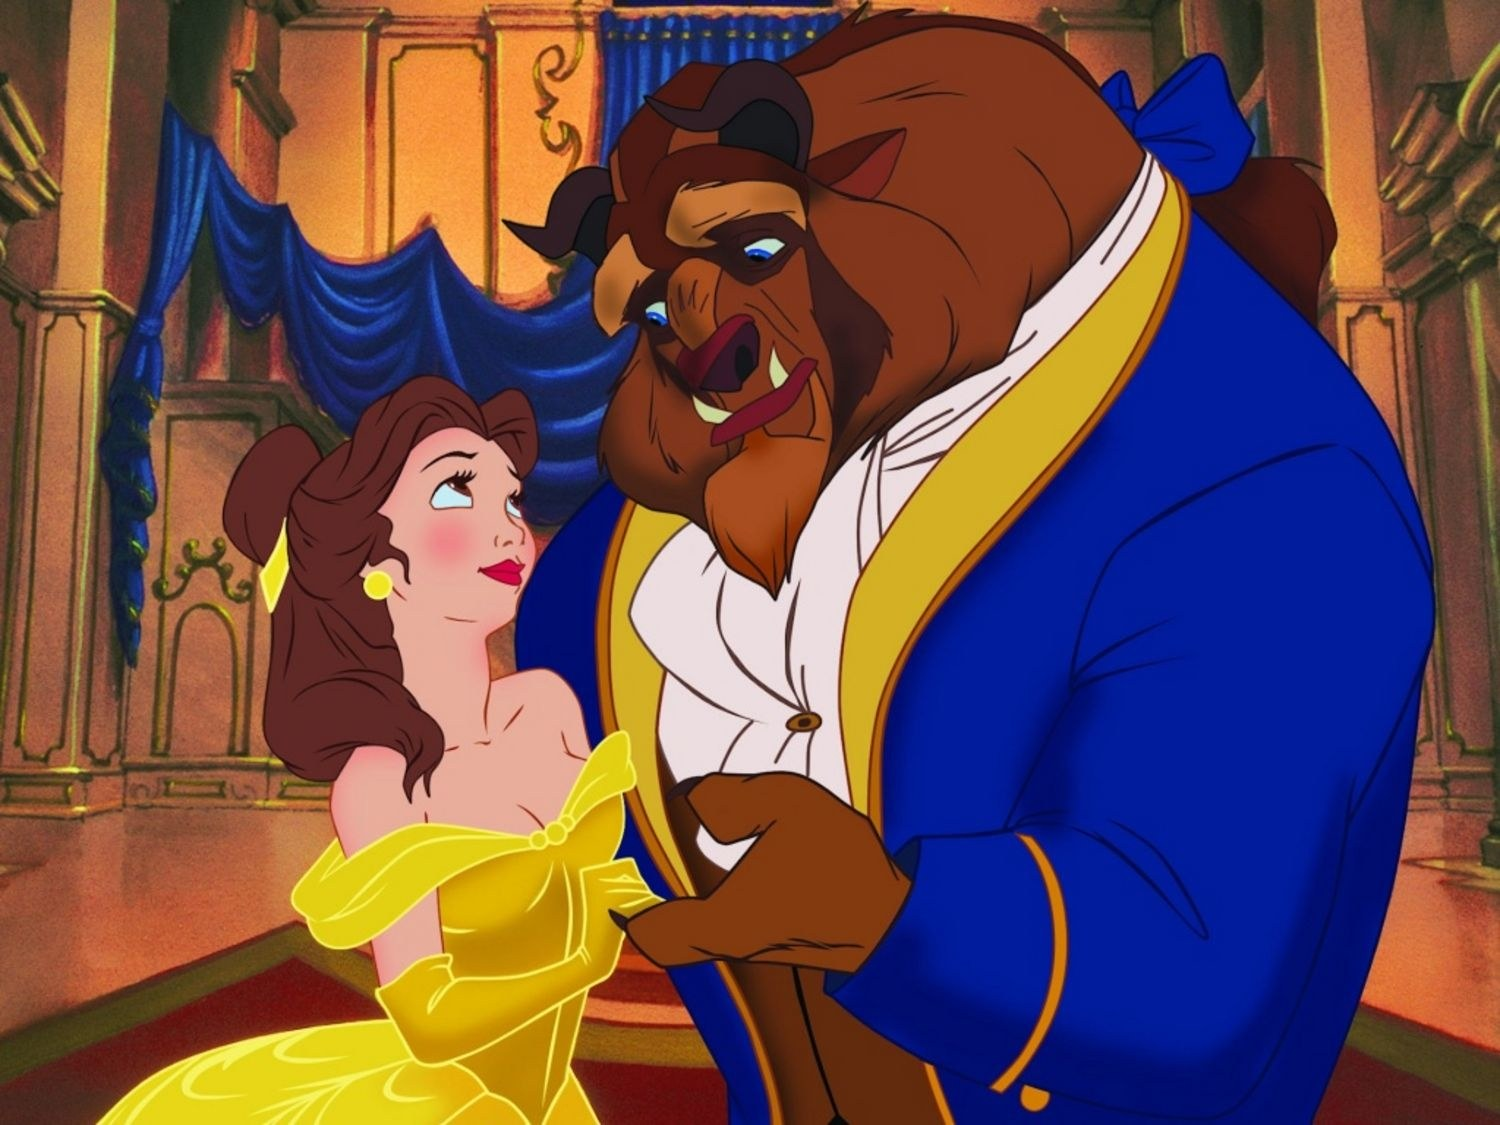 Belle and the Beast from the Disney movie Beauty and the Beast